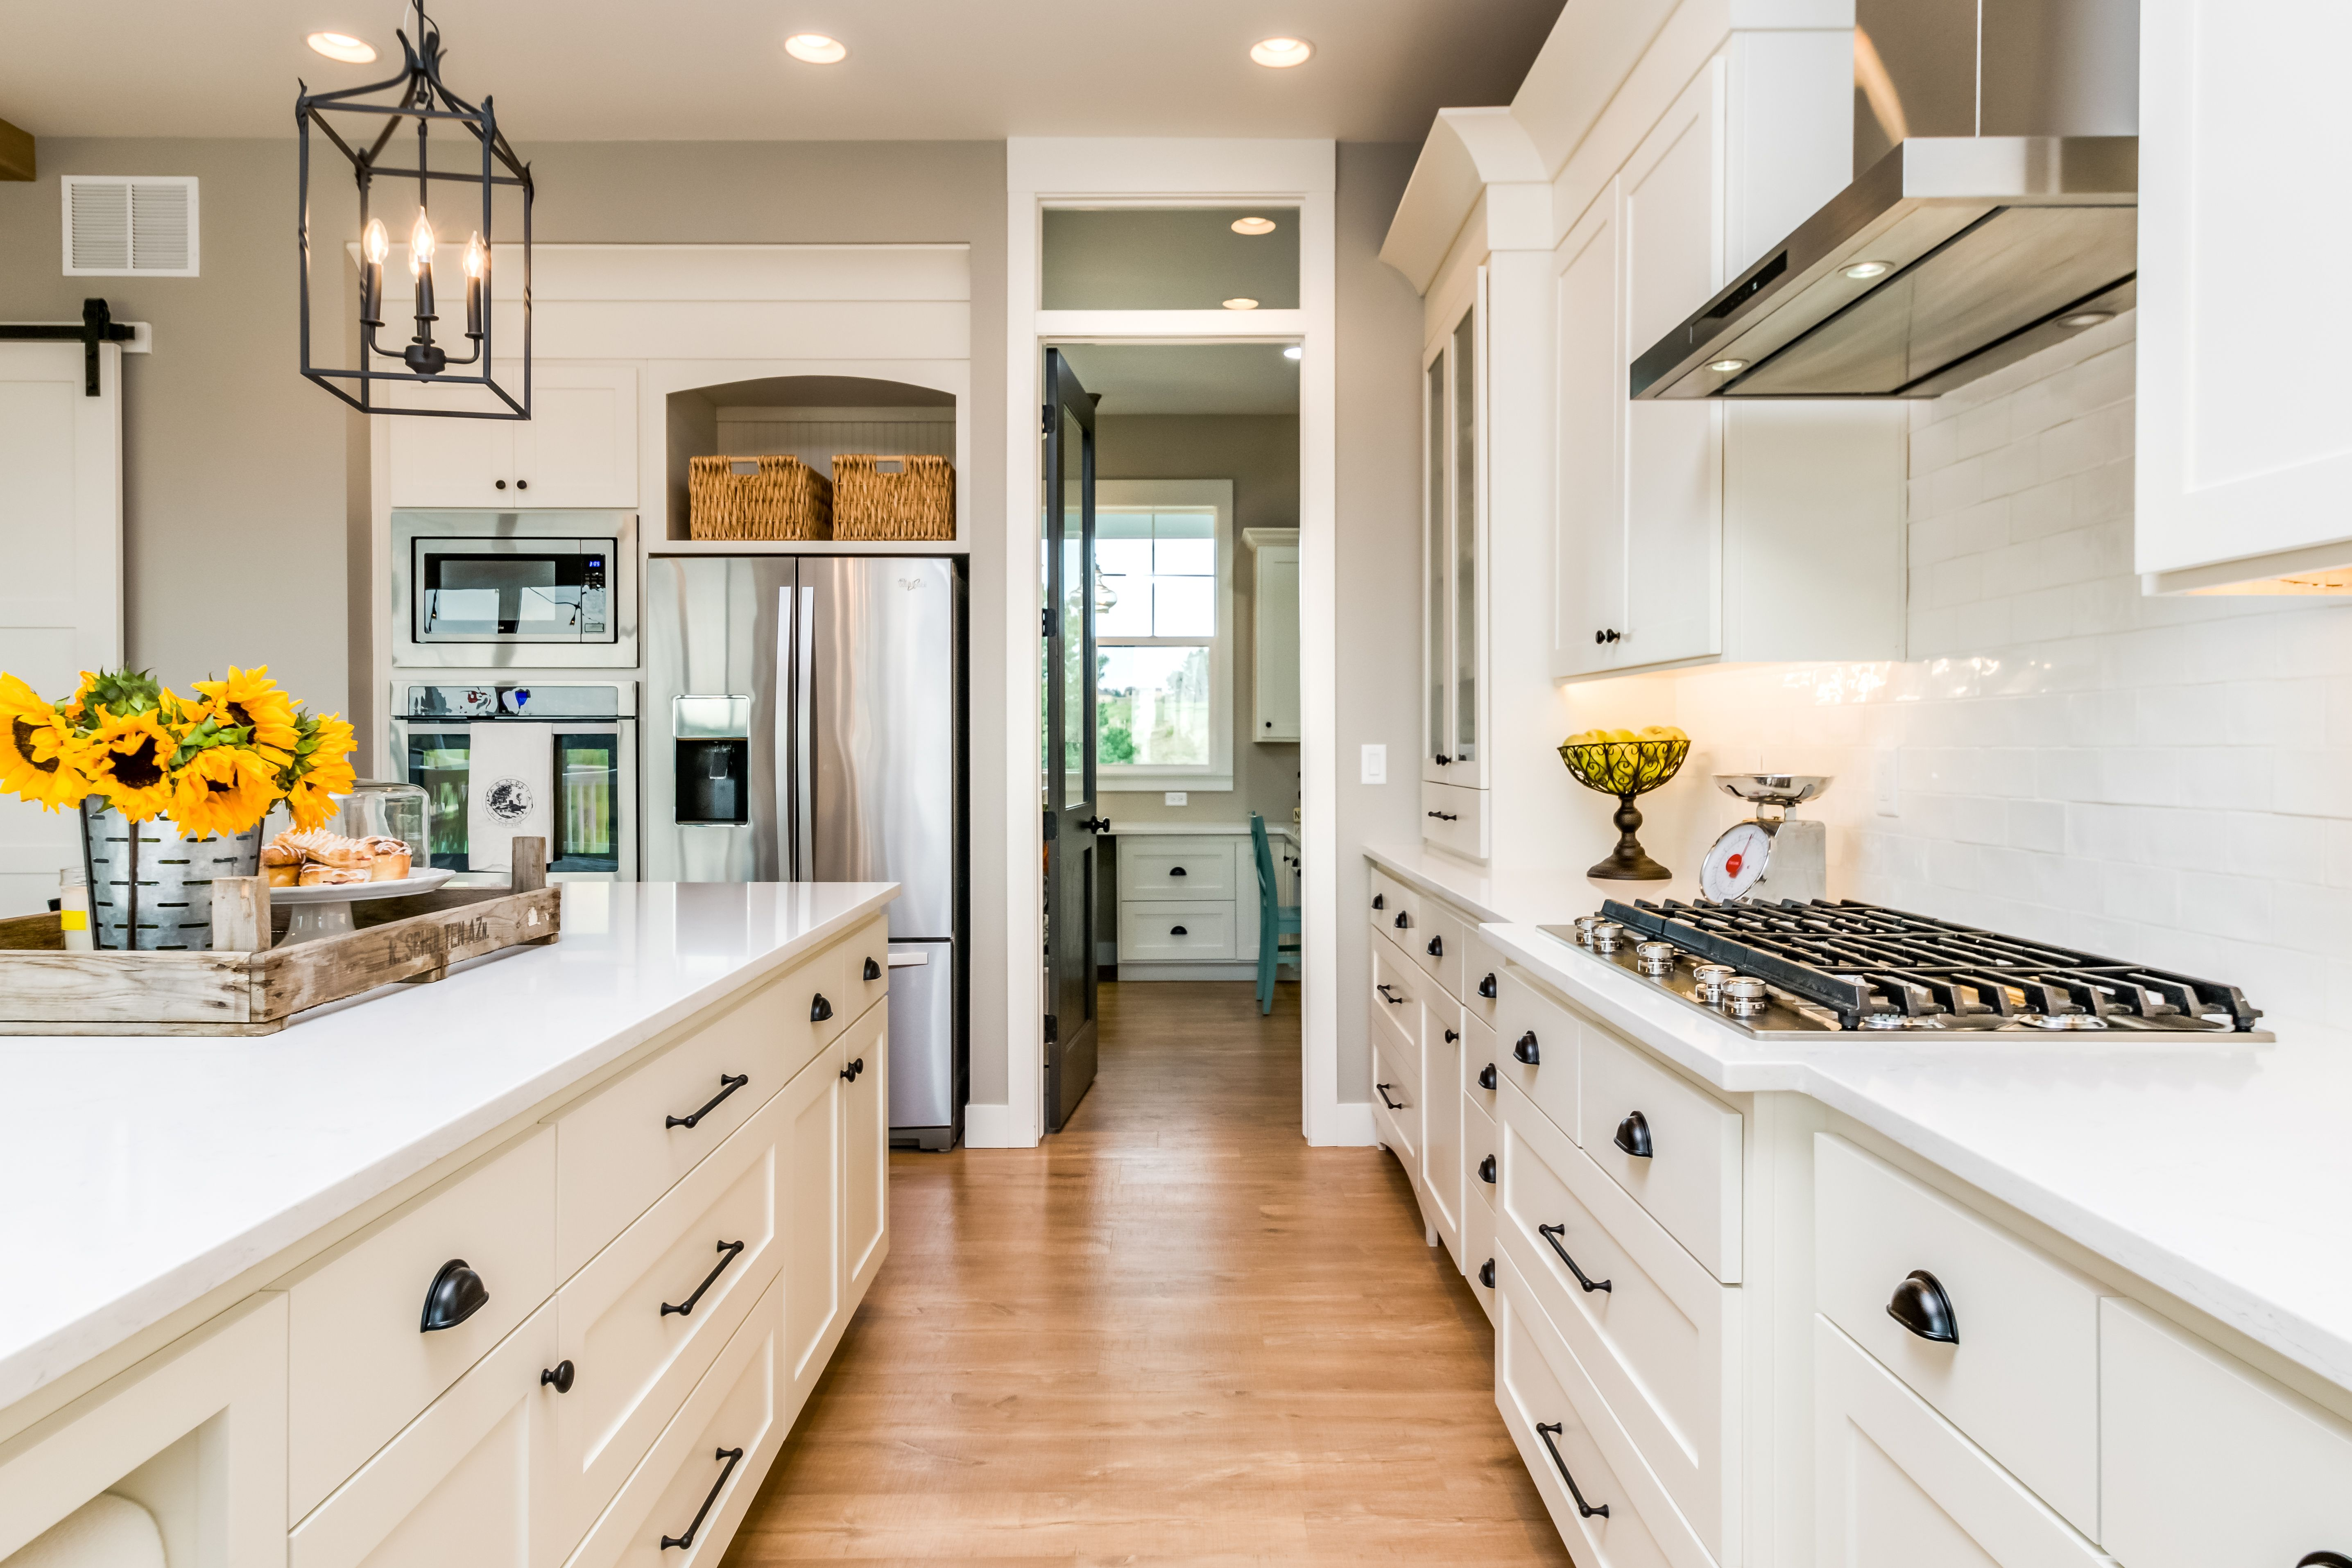 Pin by Oneyda Fernandez on Kitchen ideas (With images ...